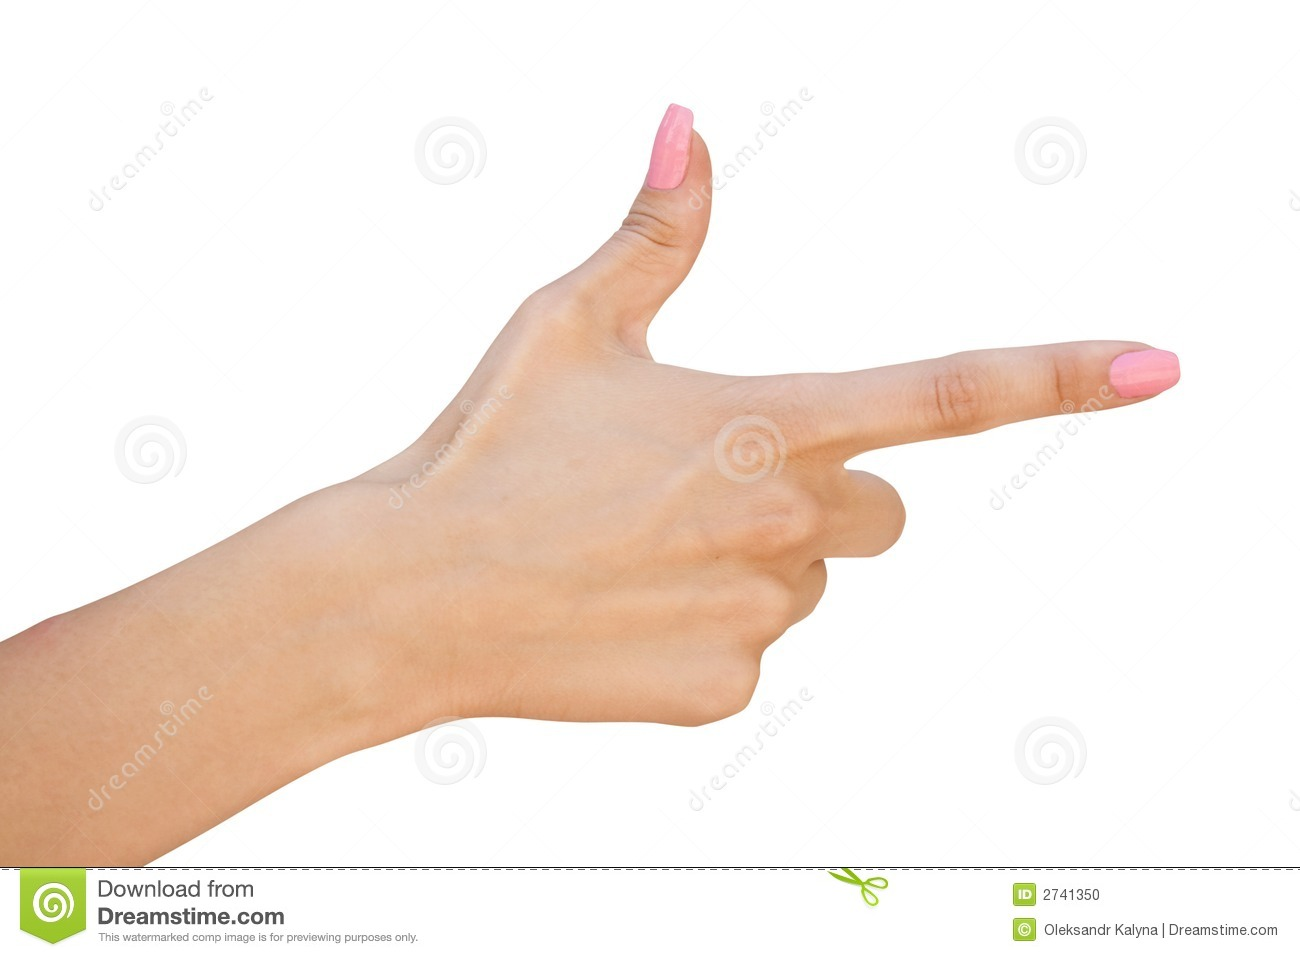 More similar stock images of ` Female hand with forefinger `